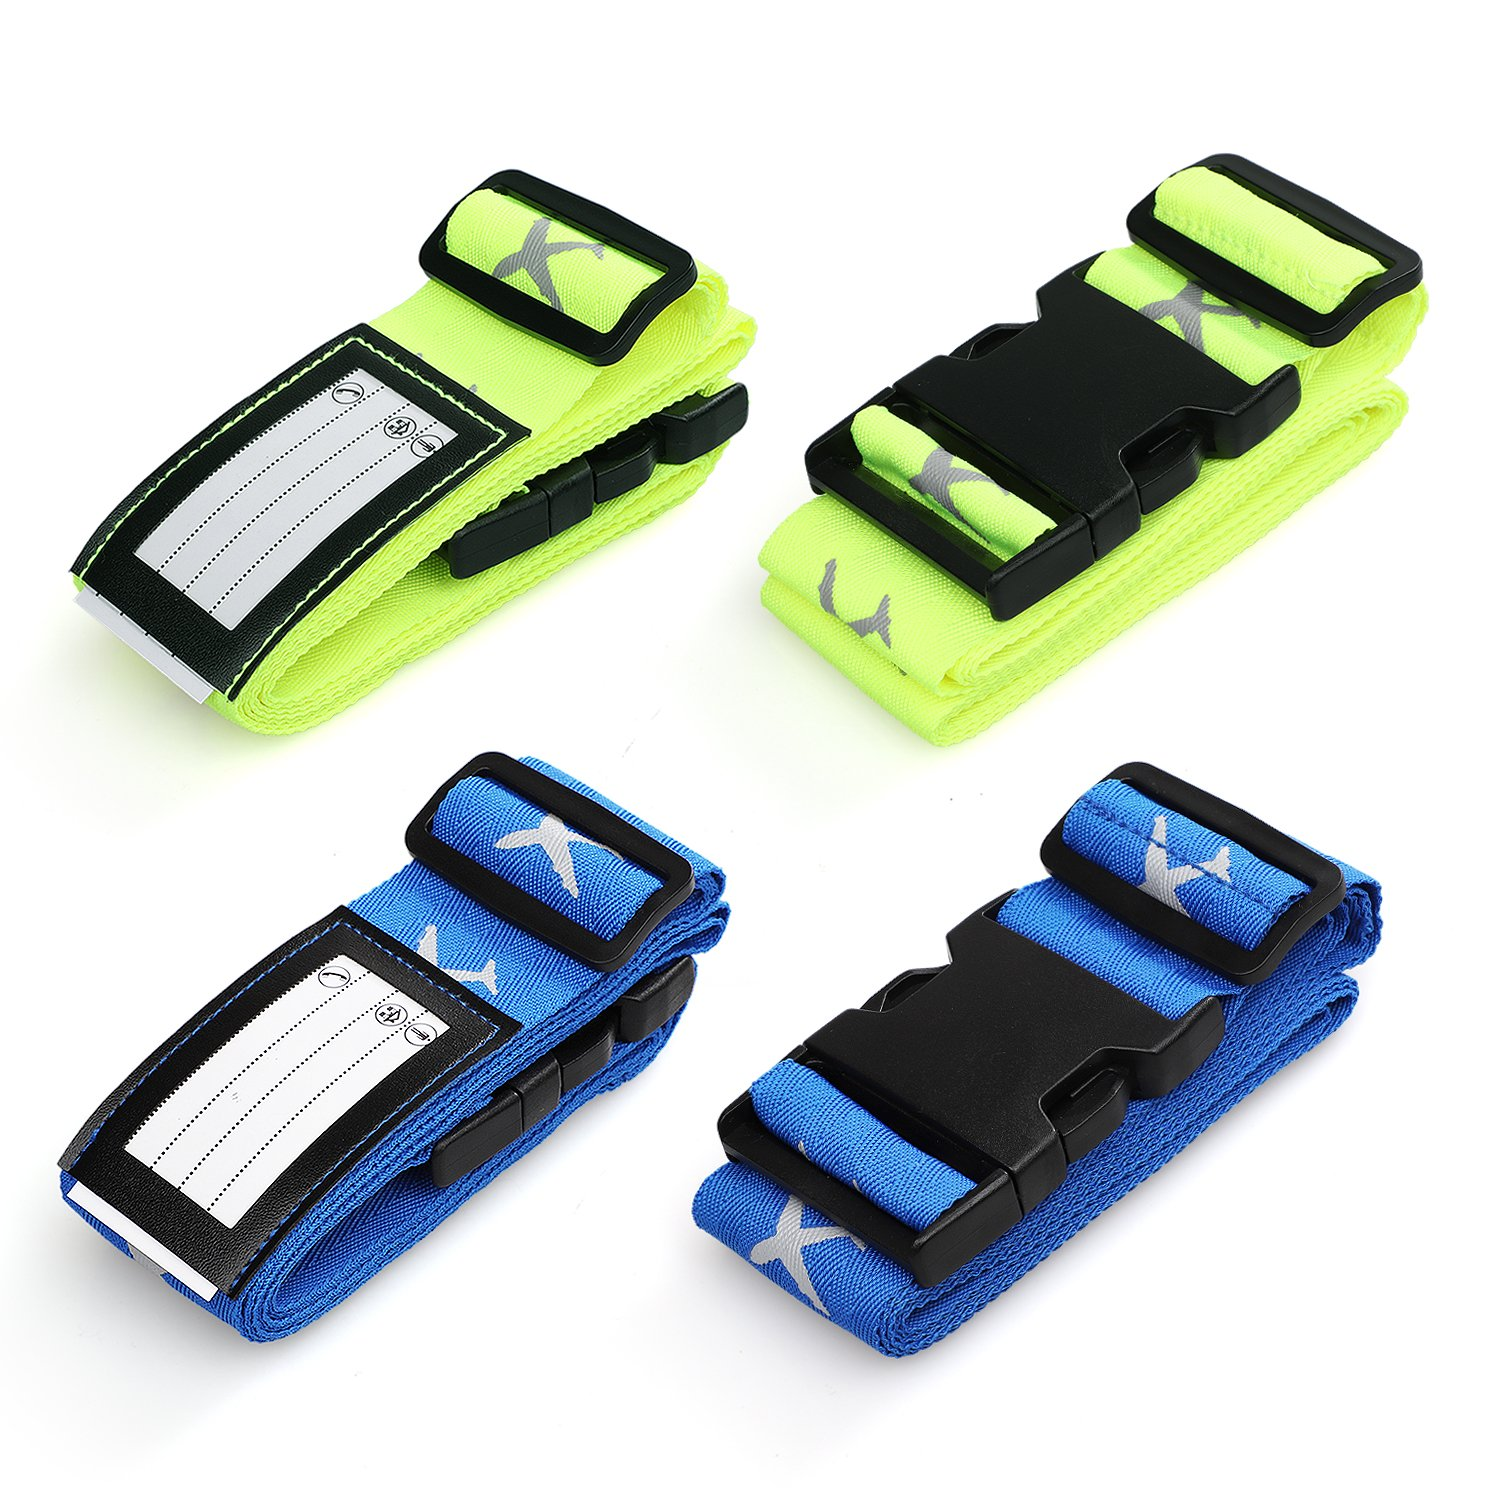 Swify Luggage Strap Suitcase Belt Elastic Travel Luggage Straps TSA Approved Accessories with Name Tags(4 Pack)